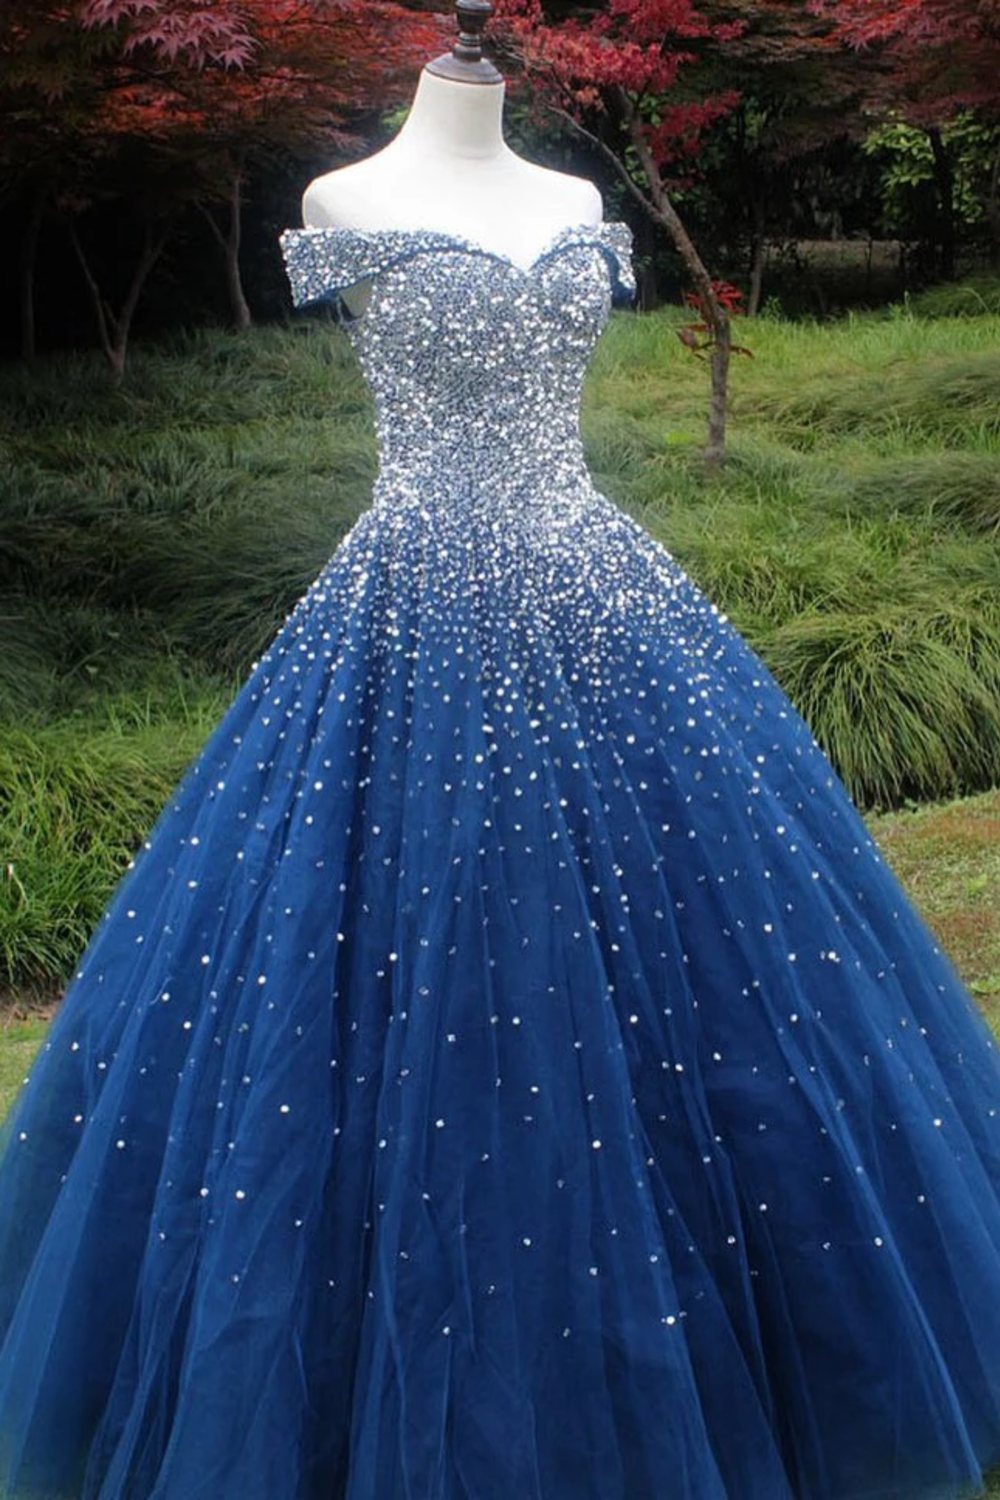 Sparkle Off The Shoulder Blue Ball Gown Prom Dresses, Puffy Tulle Quinceanera Dresses